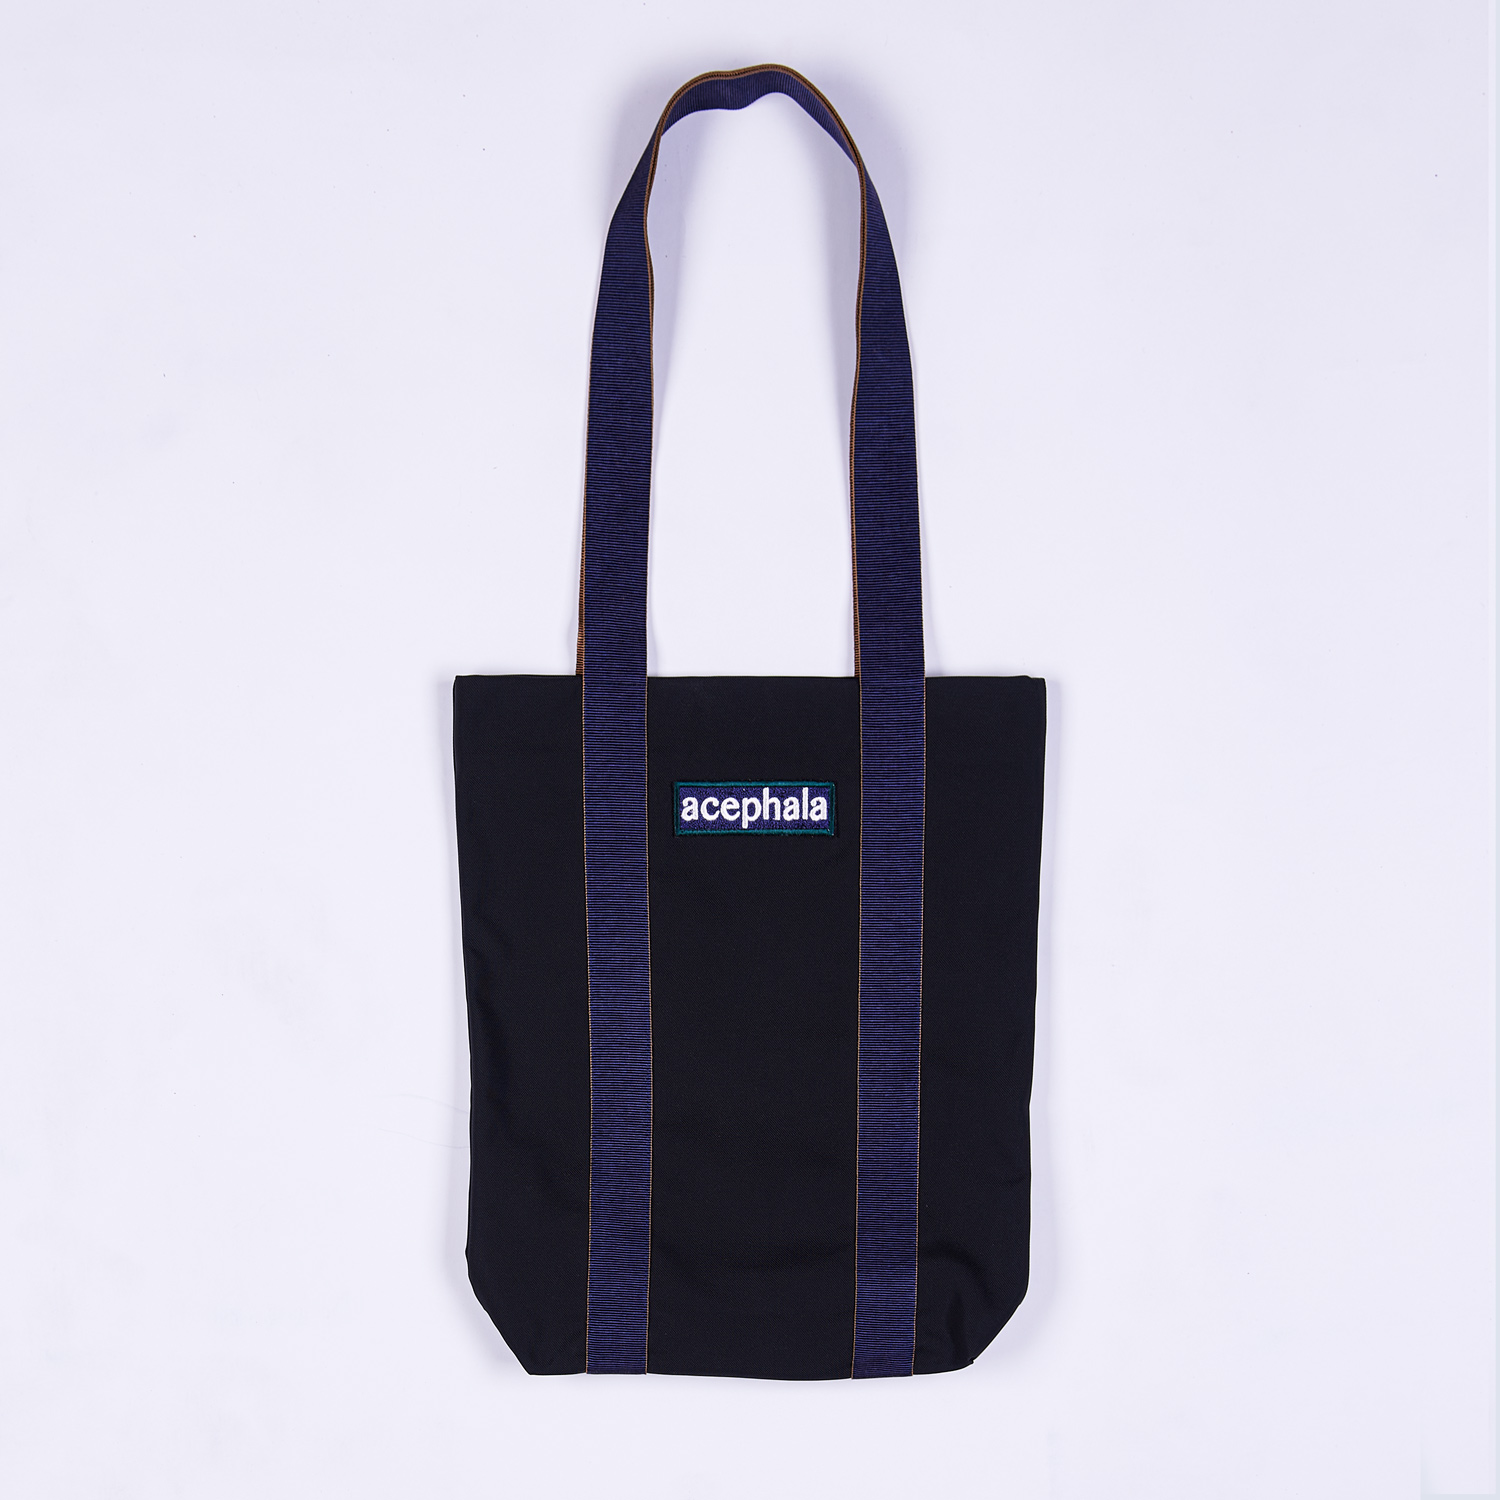 Acephala Fw20 Black Tote Bag With Logo